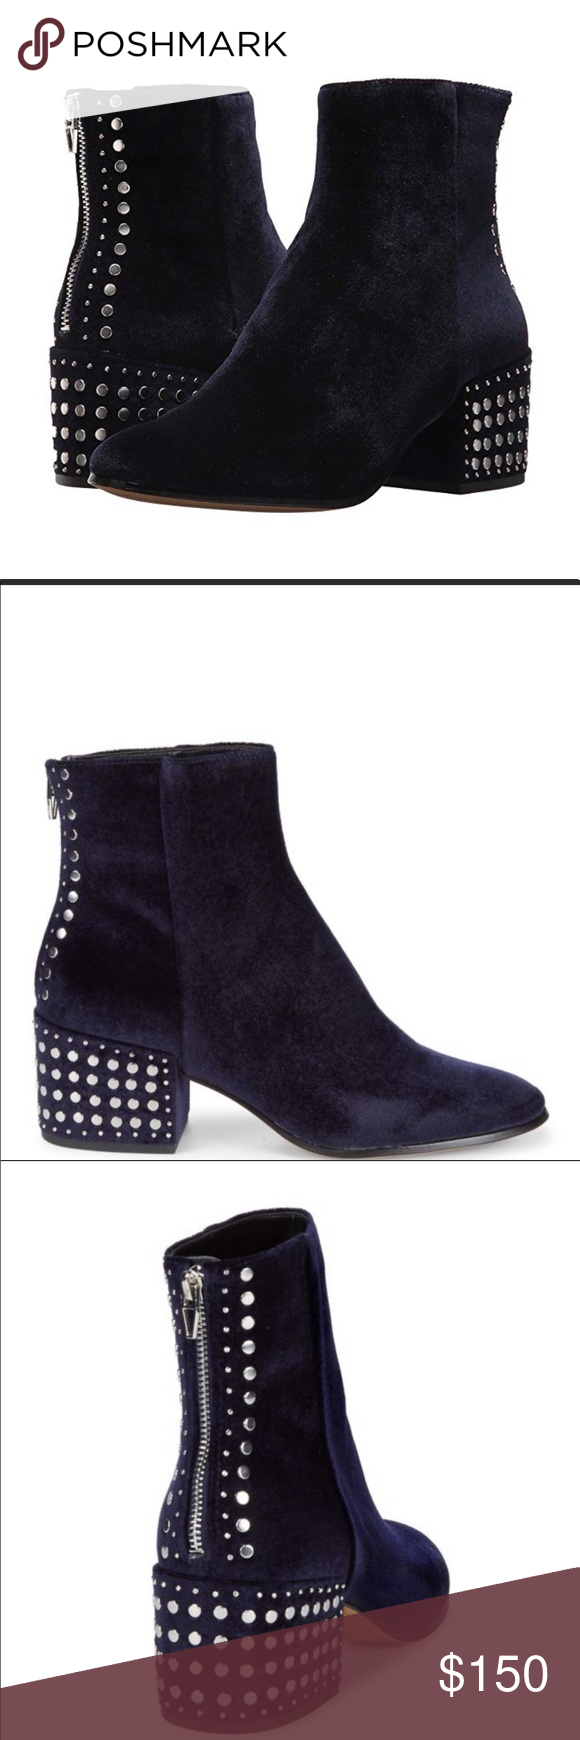 Women/'s Shoes Dolce Vita Mazey Suede Studded Block Heel Boots Smoke *New*